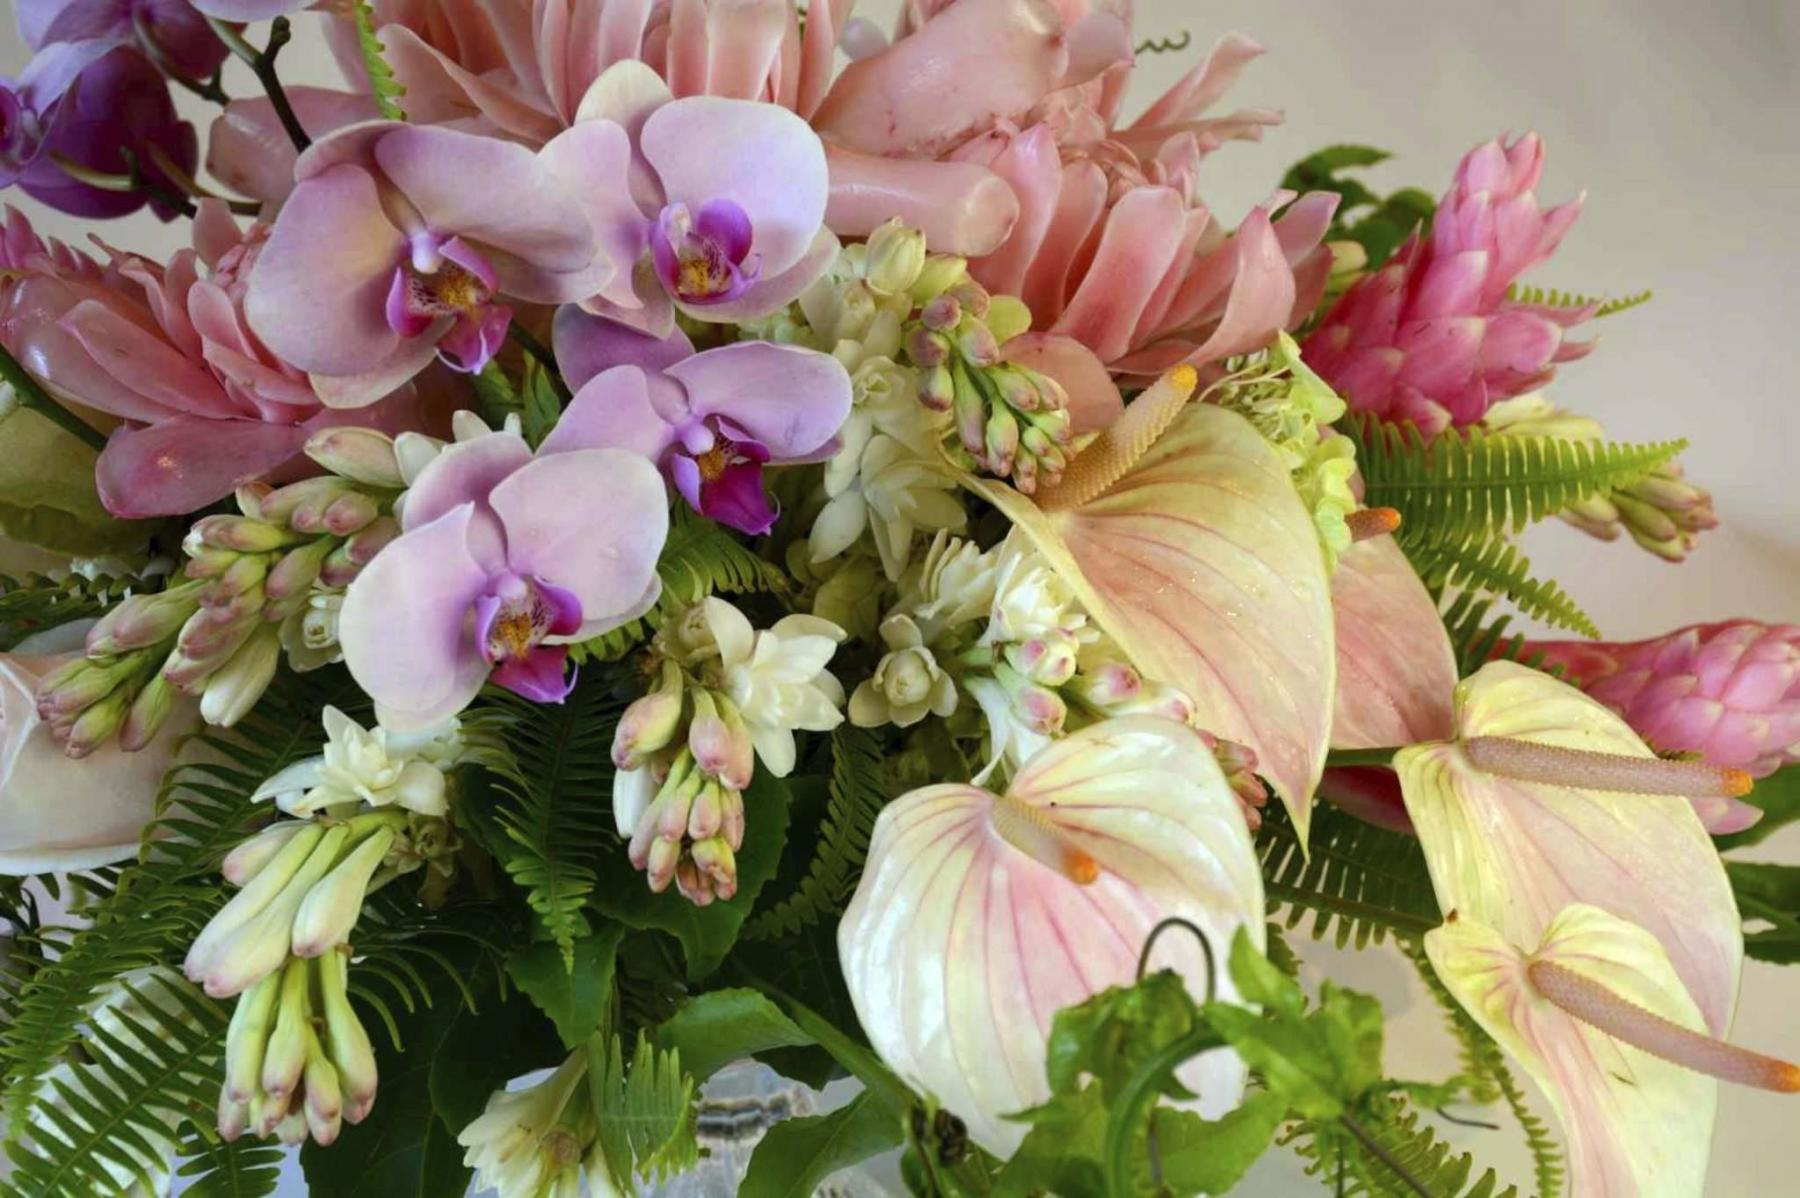 <p>Colleen Zacharias / WINNIPEG FREE PRESS</p><p>New botanical experiences can be yours with exotic Hawaii-grown anthurium, orchids, ginger and tropical greenery available direct from Hawaii to Canadian florists.</p></p>